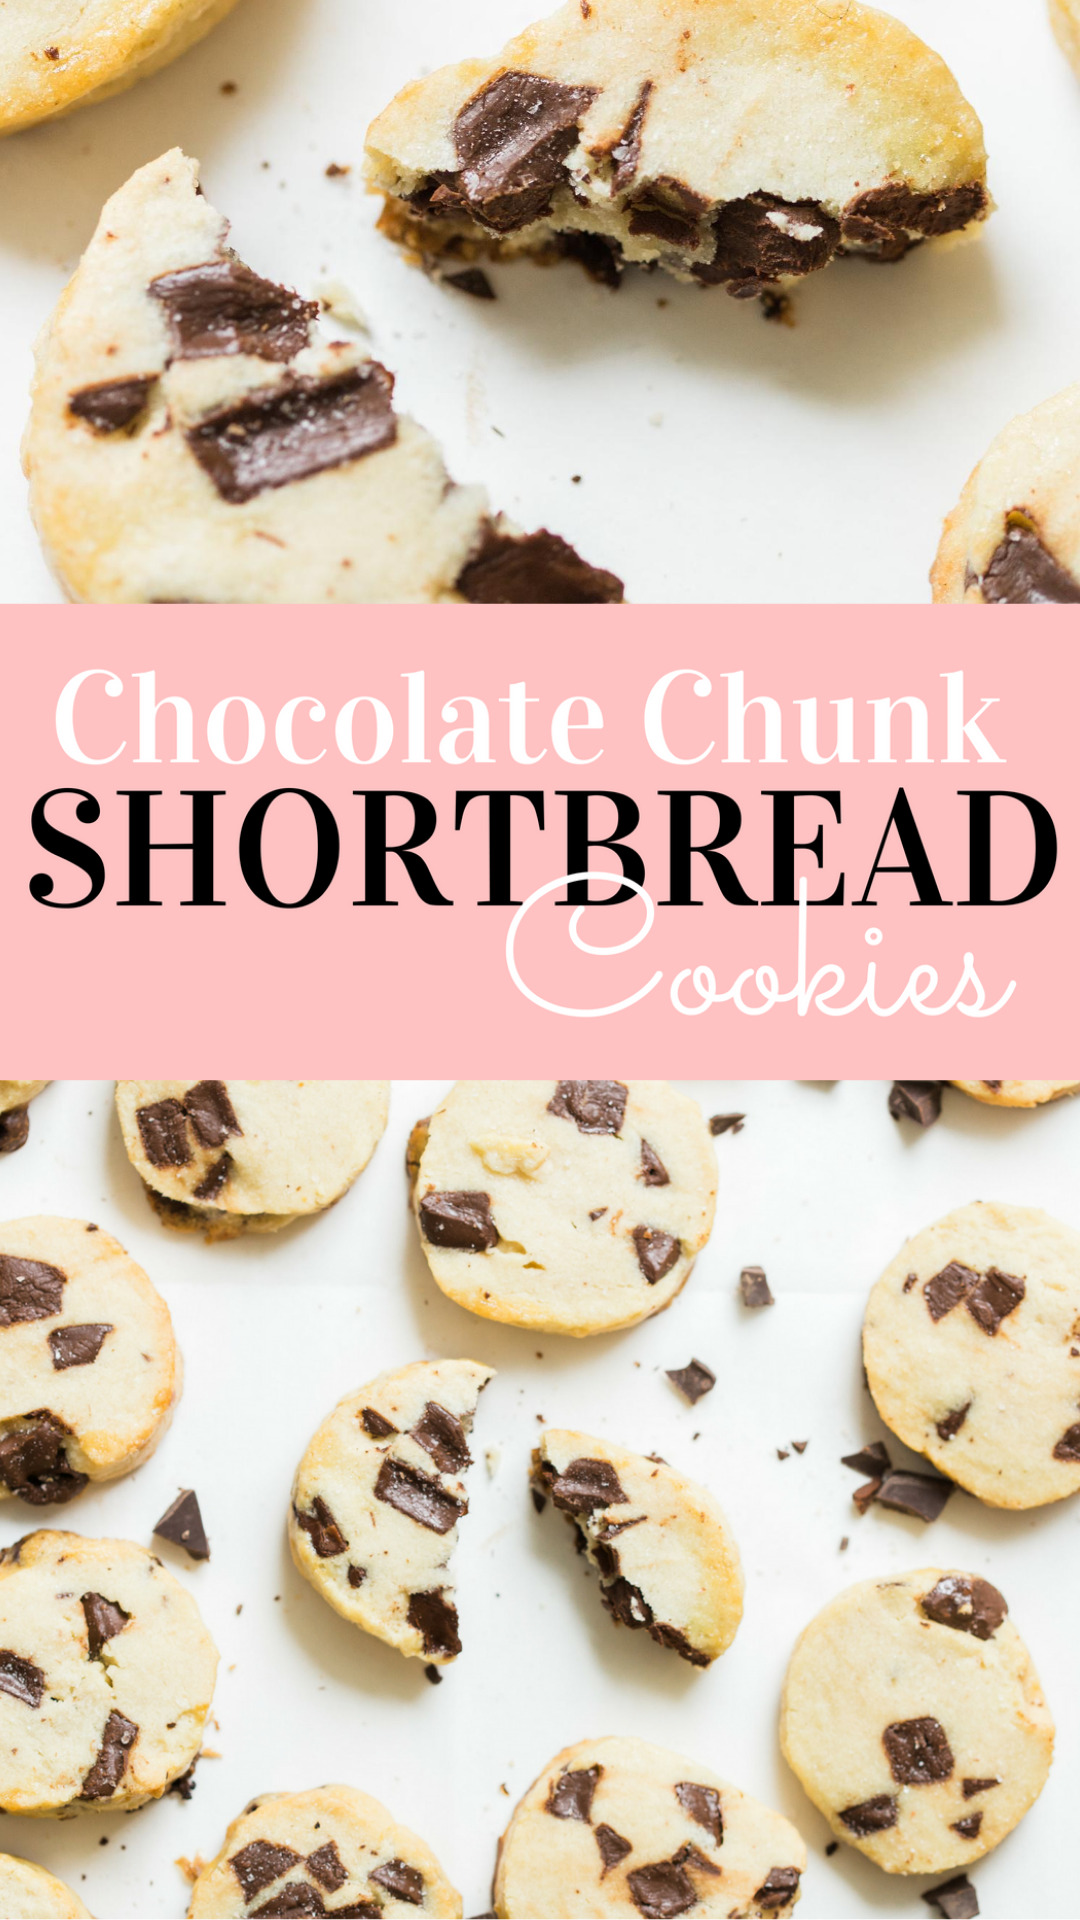 Looking for a crazy amazing cookie recipe? You HAVE to make the INCREDIBLE salted butter chocolate chunk shortbread cookies! Thick, chewy, buttery, decadent; a total crowd-pleaser. These are the upgrade to classic chocolate chip cookies you never knew you needed. | glitterinc.com | @glitterinc